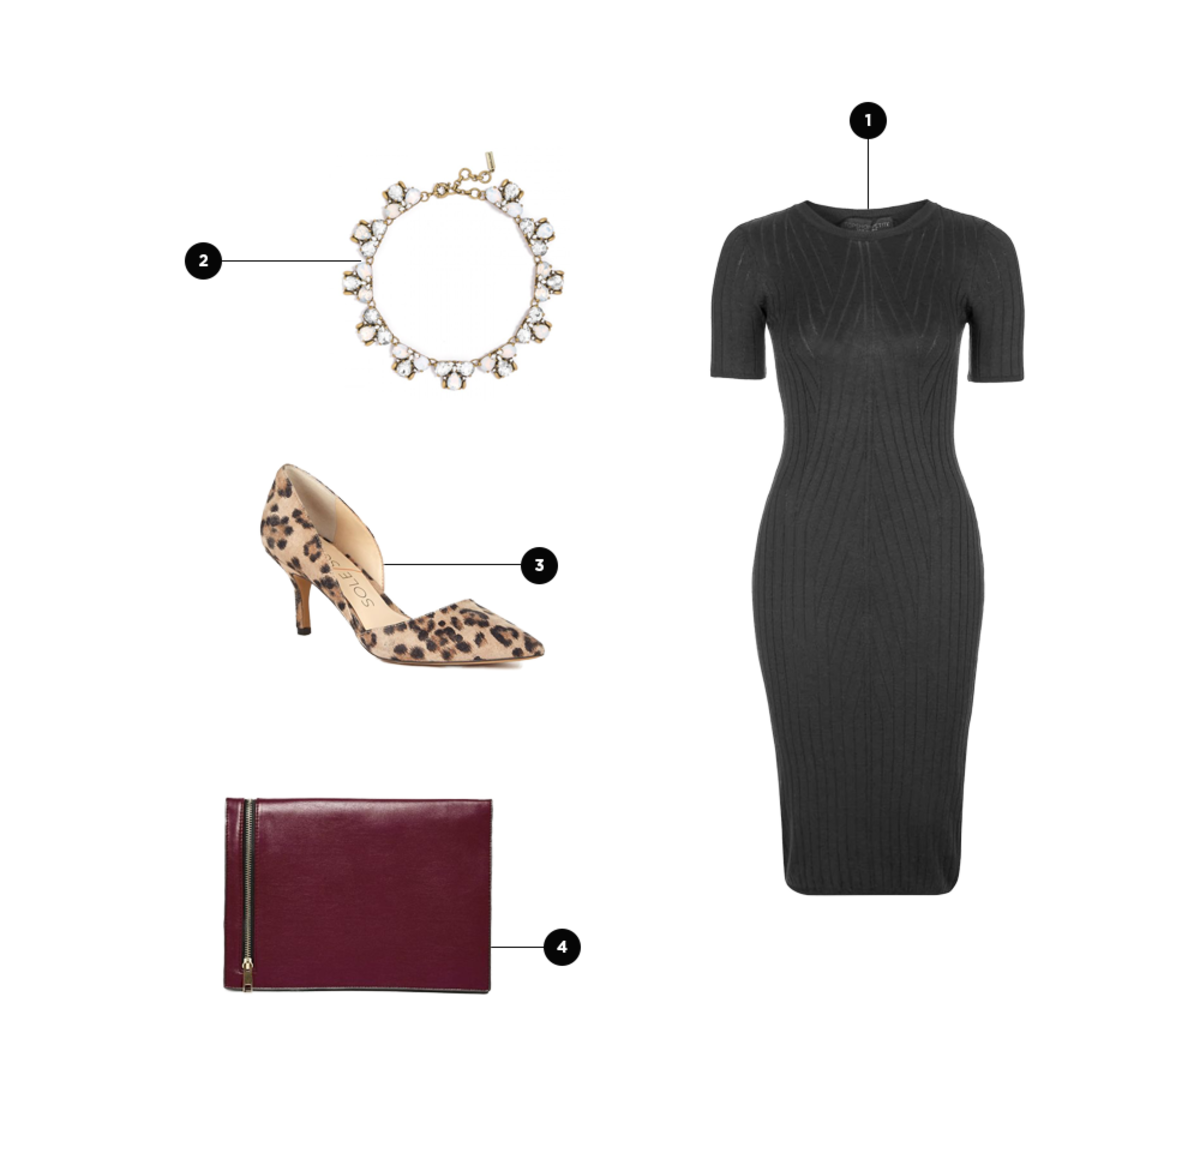 1. Topshop, $70 / 2. BaubleBar, $58 / 3. Sole Society, $70 / 4. Asos, $30